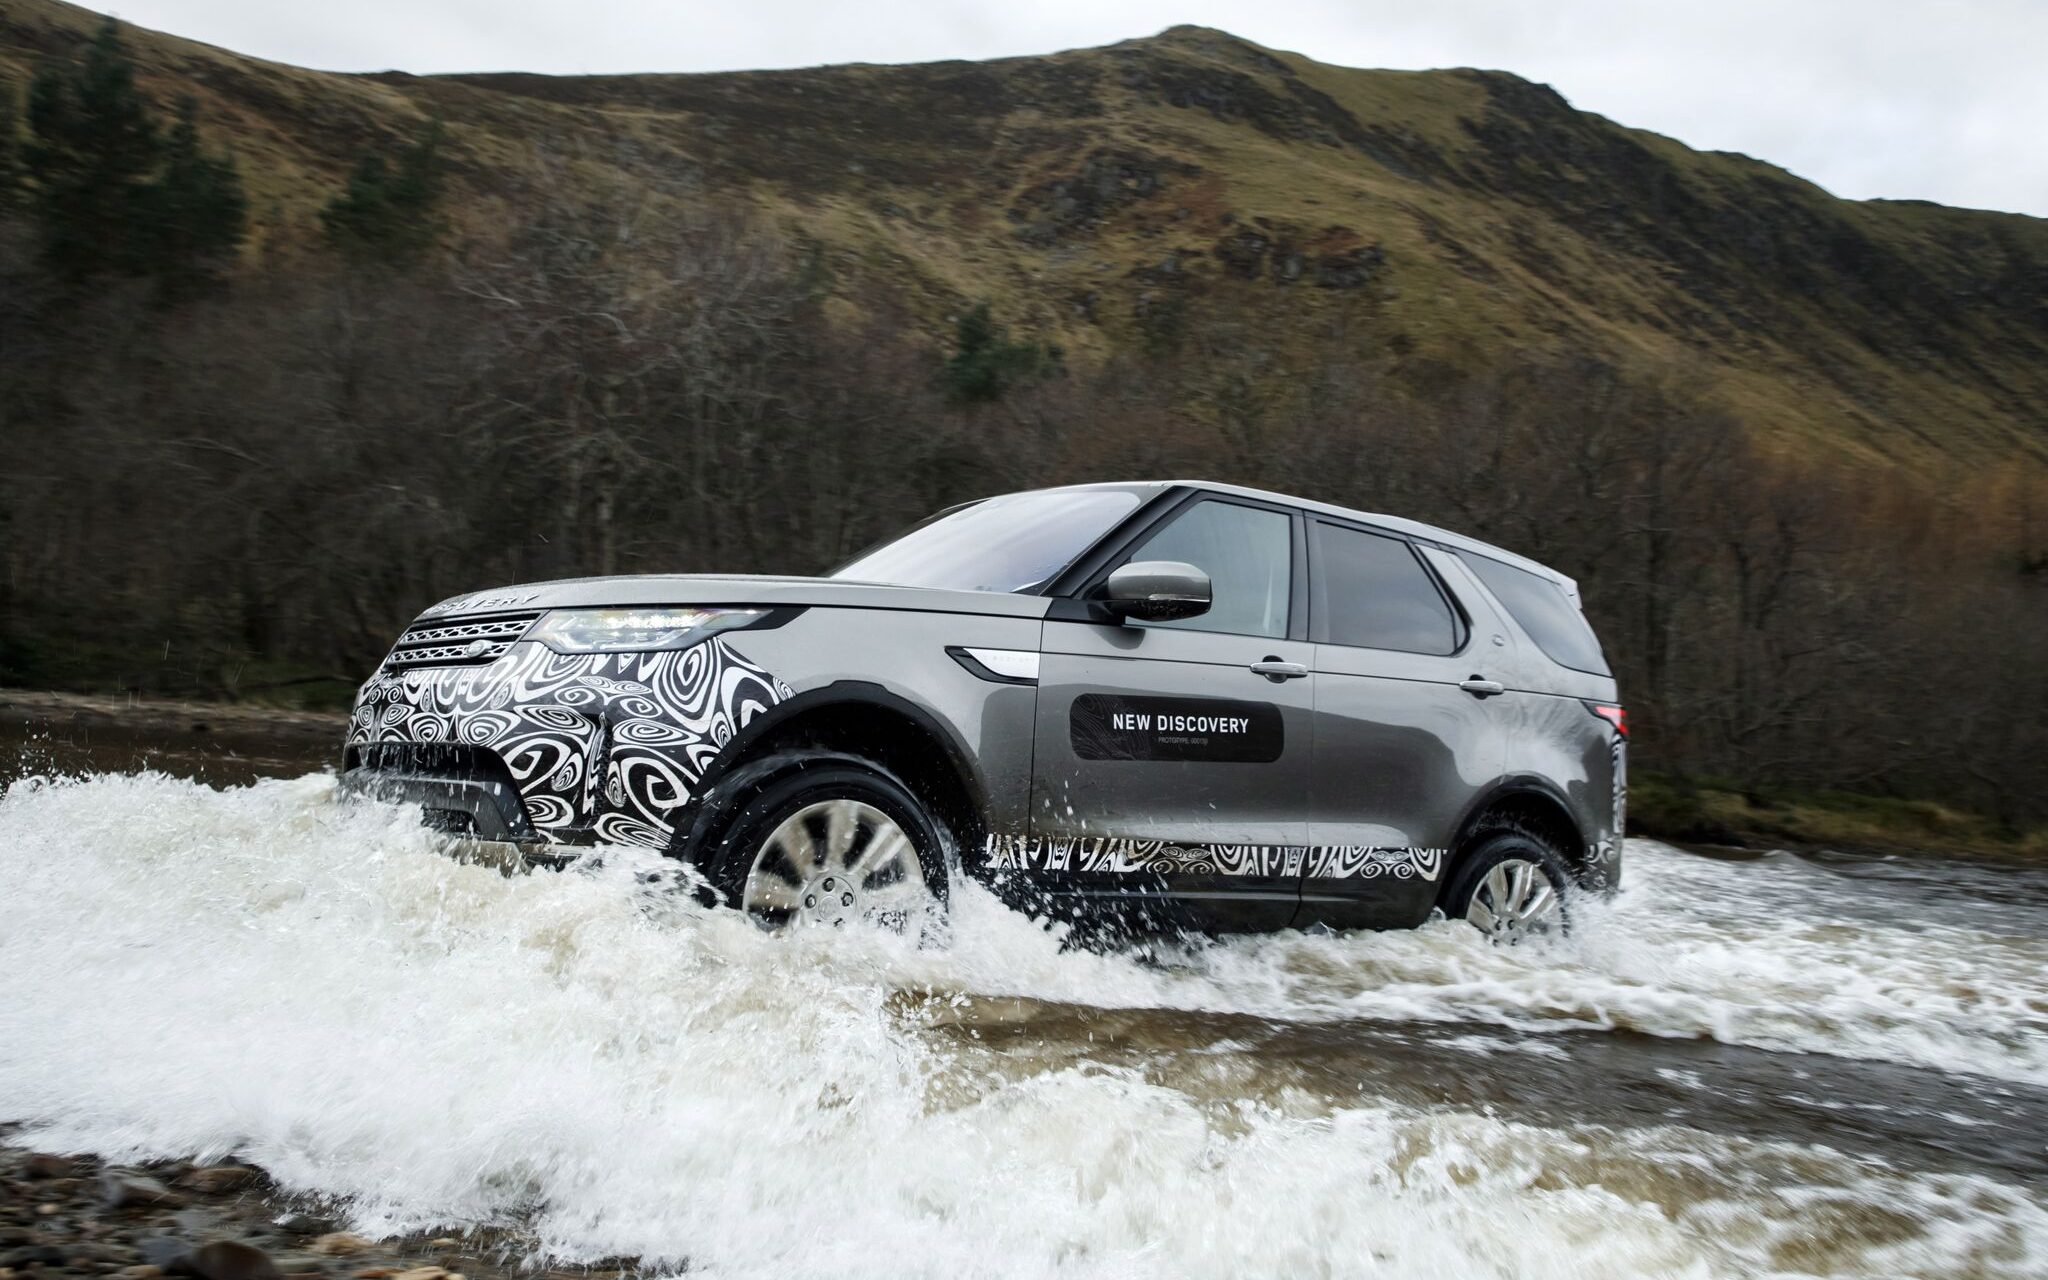 The Disco has landed new Land Rover Discovery in photos Cars